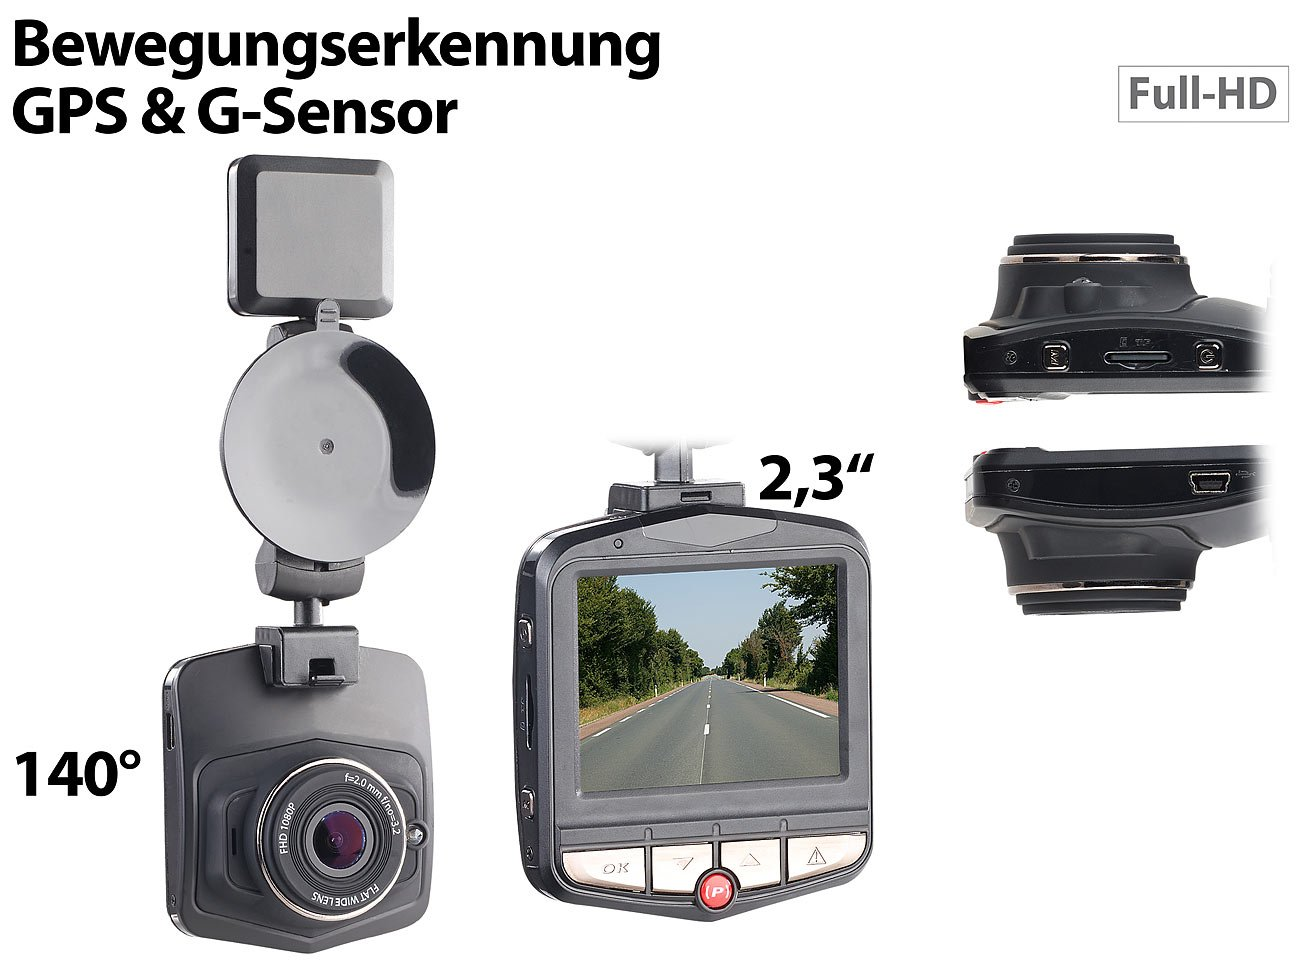 NavGear-Kamera-fr-Auto-Full-HD-Dashcam-MDV-2770GPS-mit-GPS-G-Sensor-58-cm-Display-23-Video-Dashcam